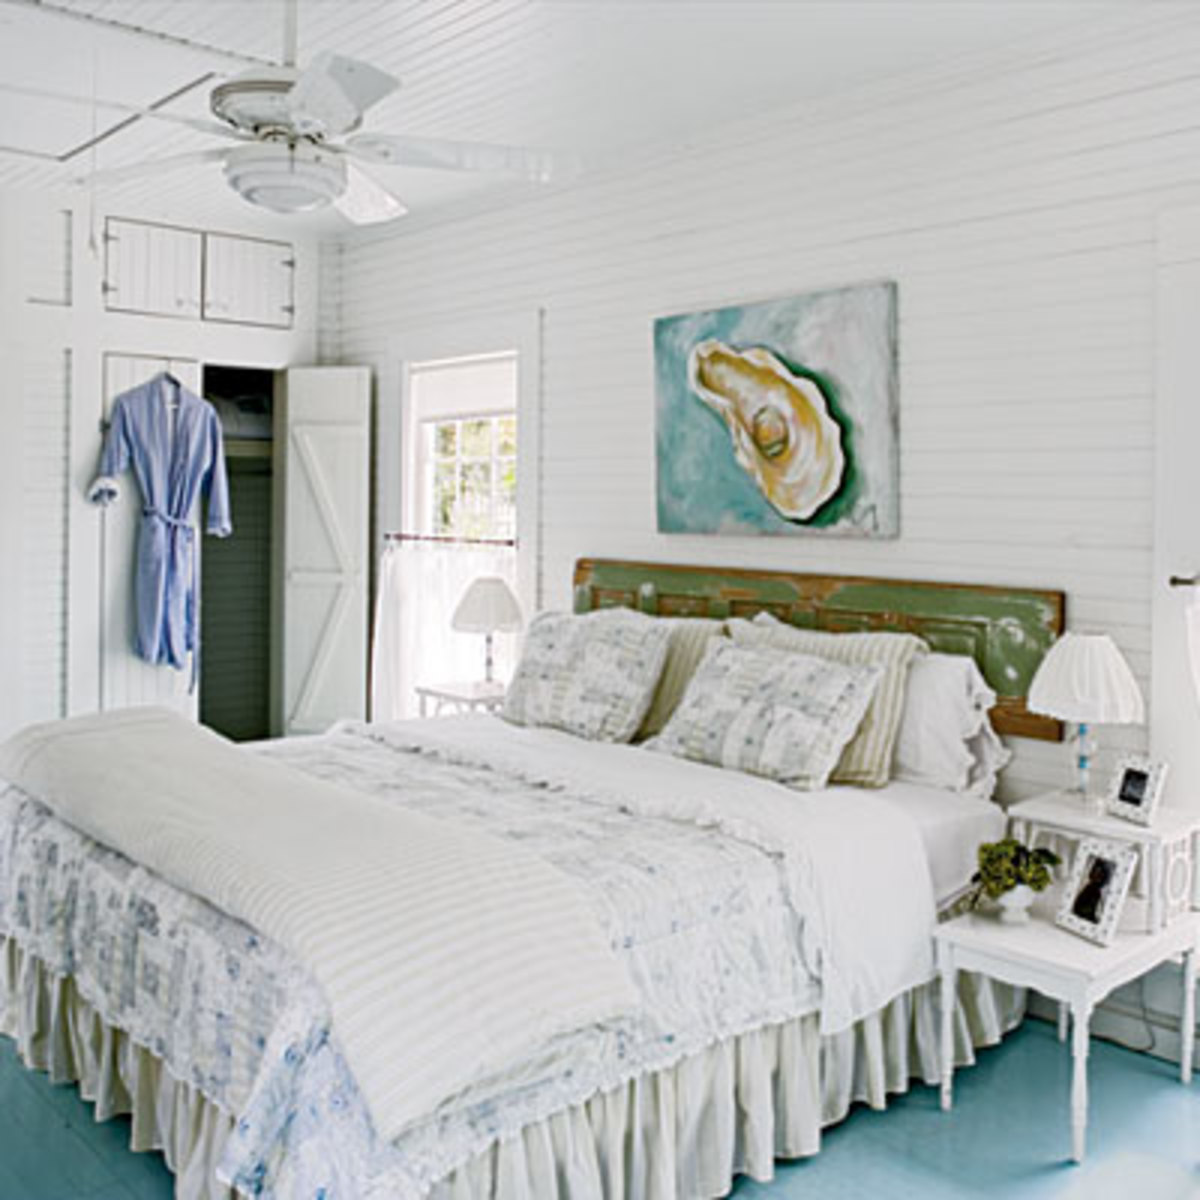 A re-purposed old door can add charm as a headboard. Add trim to give it more flair.